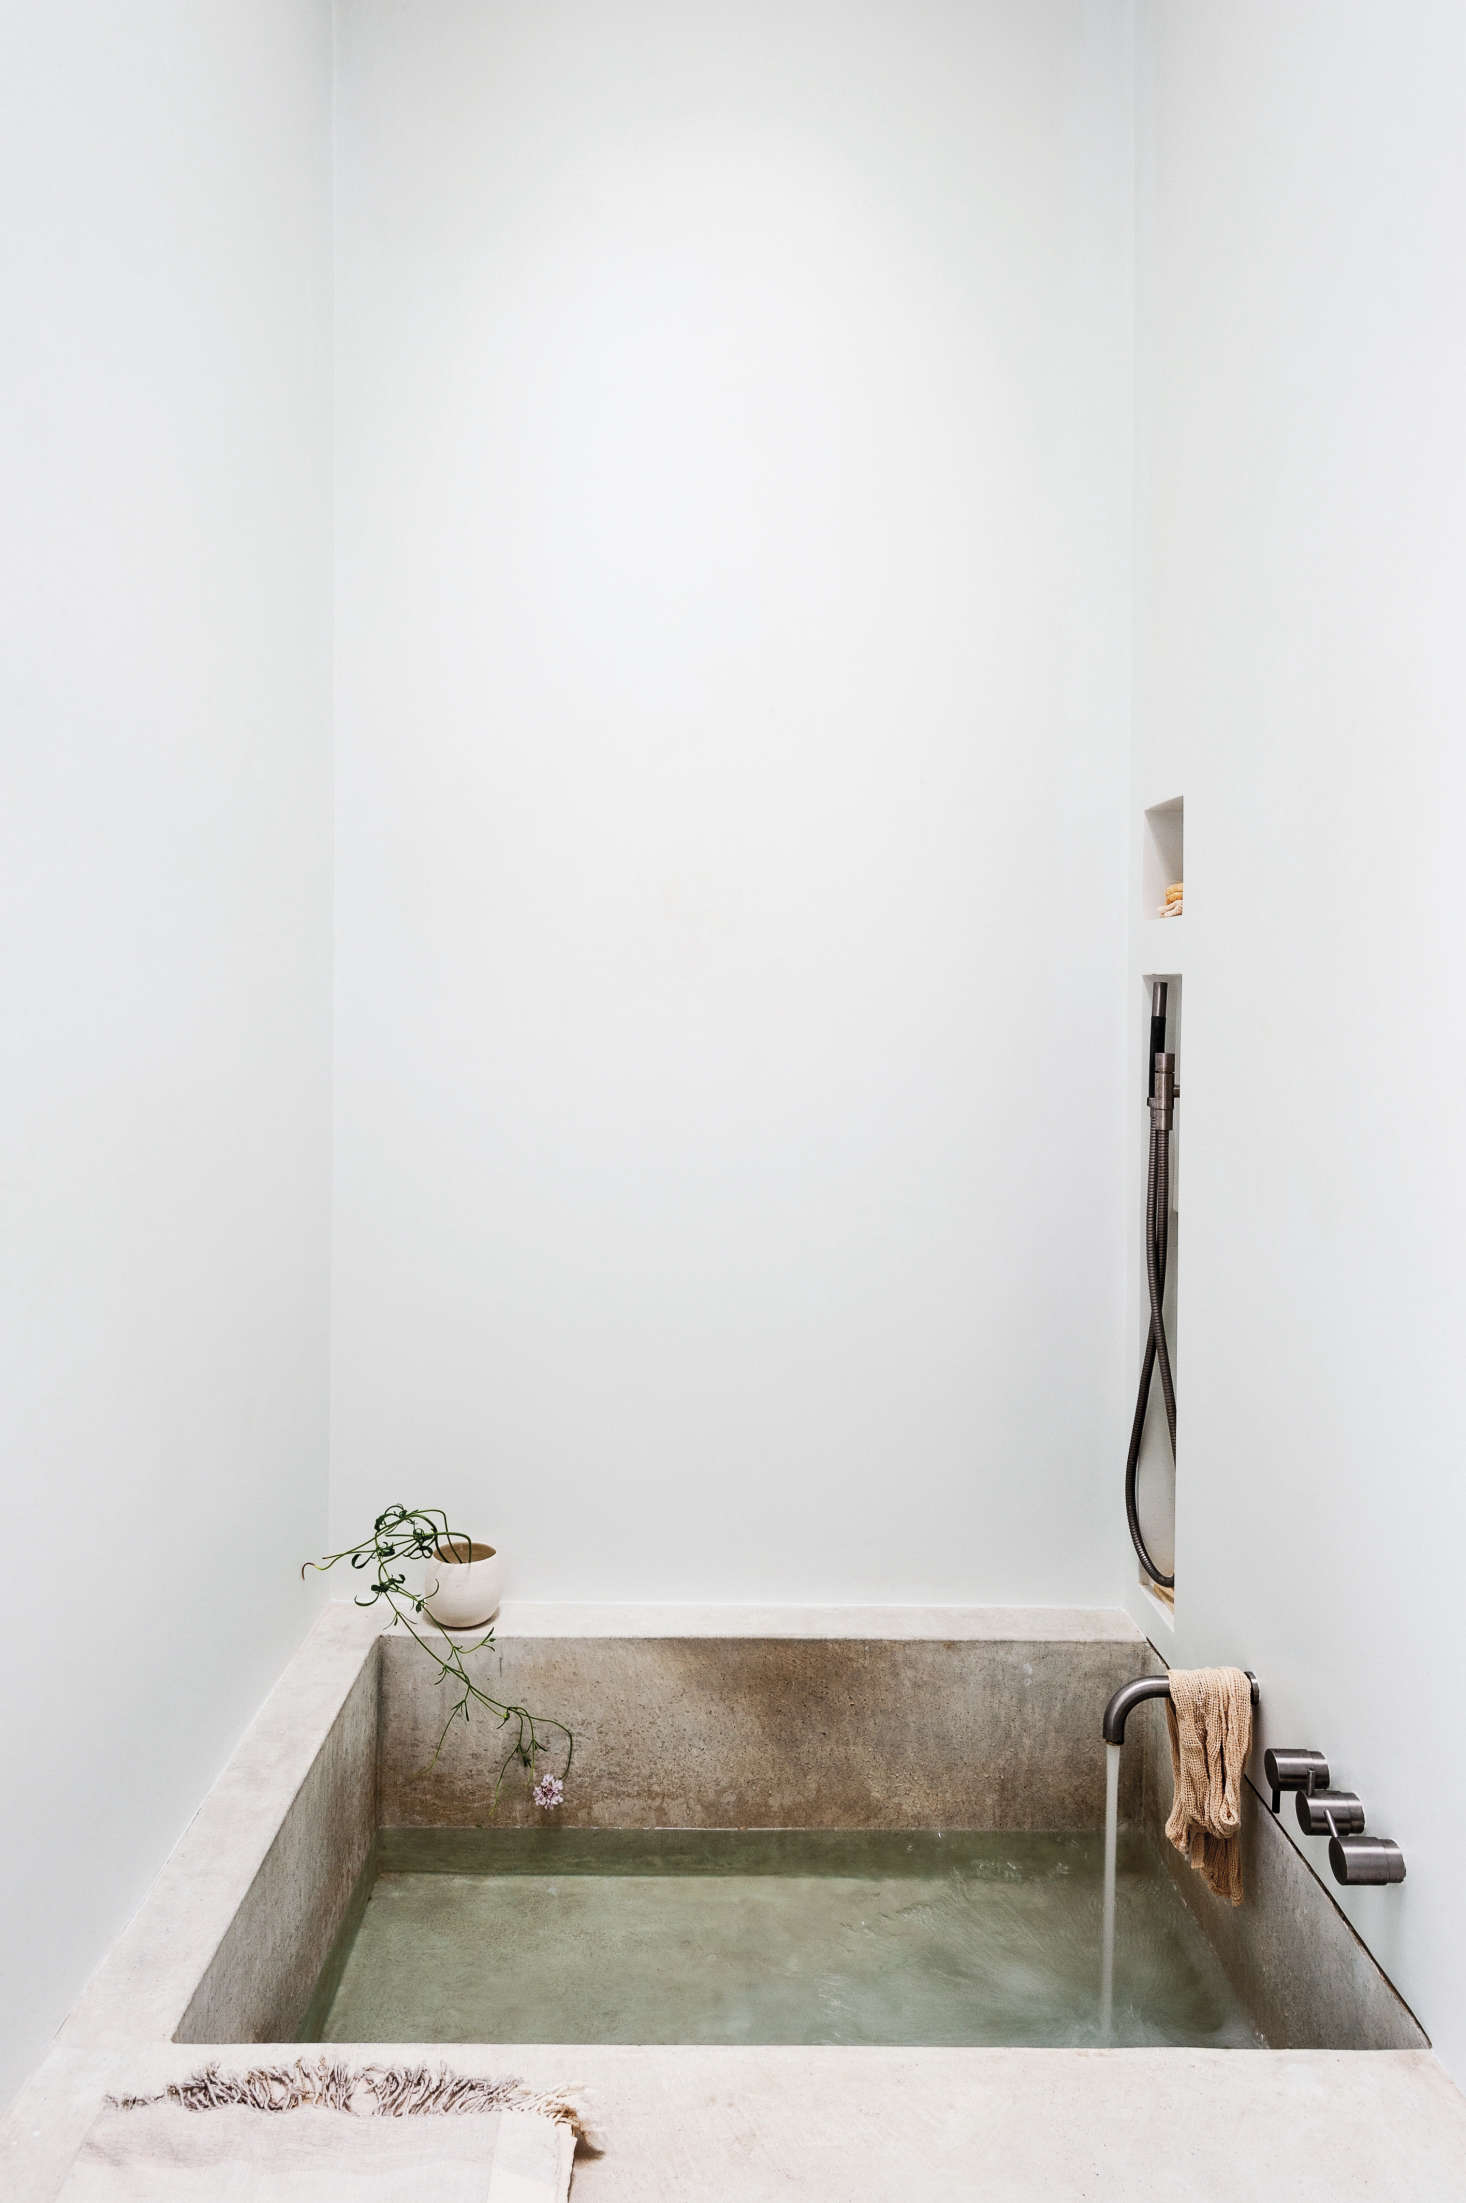 Michael Scherrer Bath by Matthew Williams for Remodelista